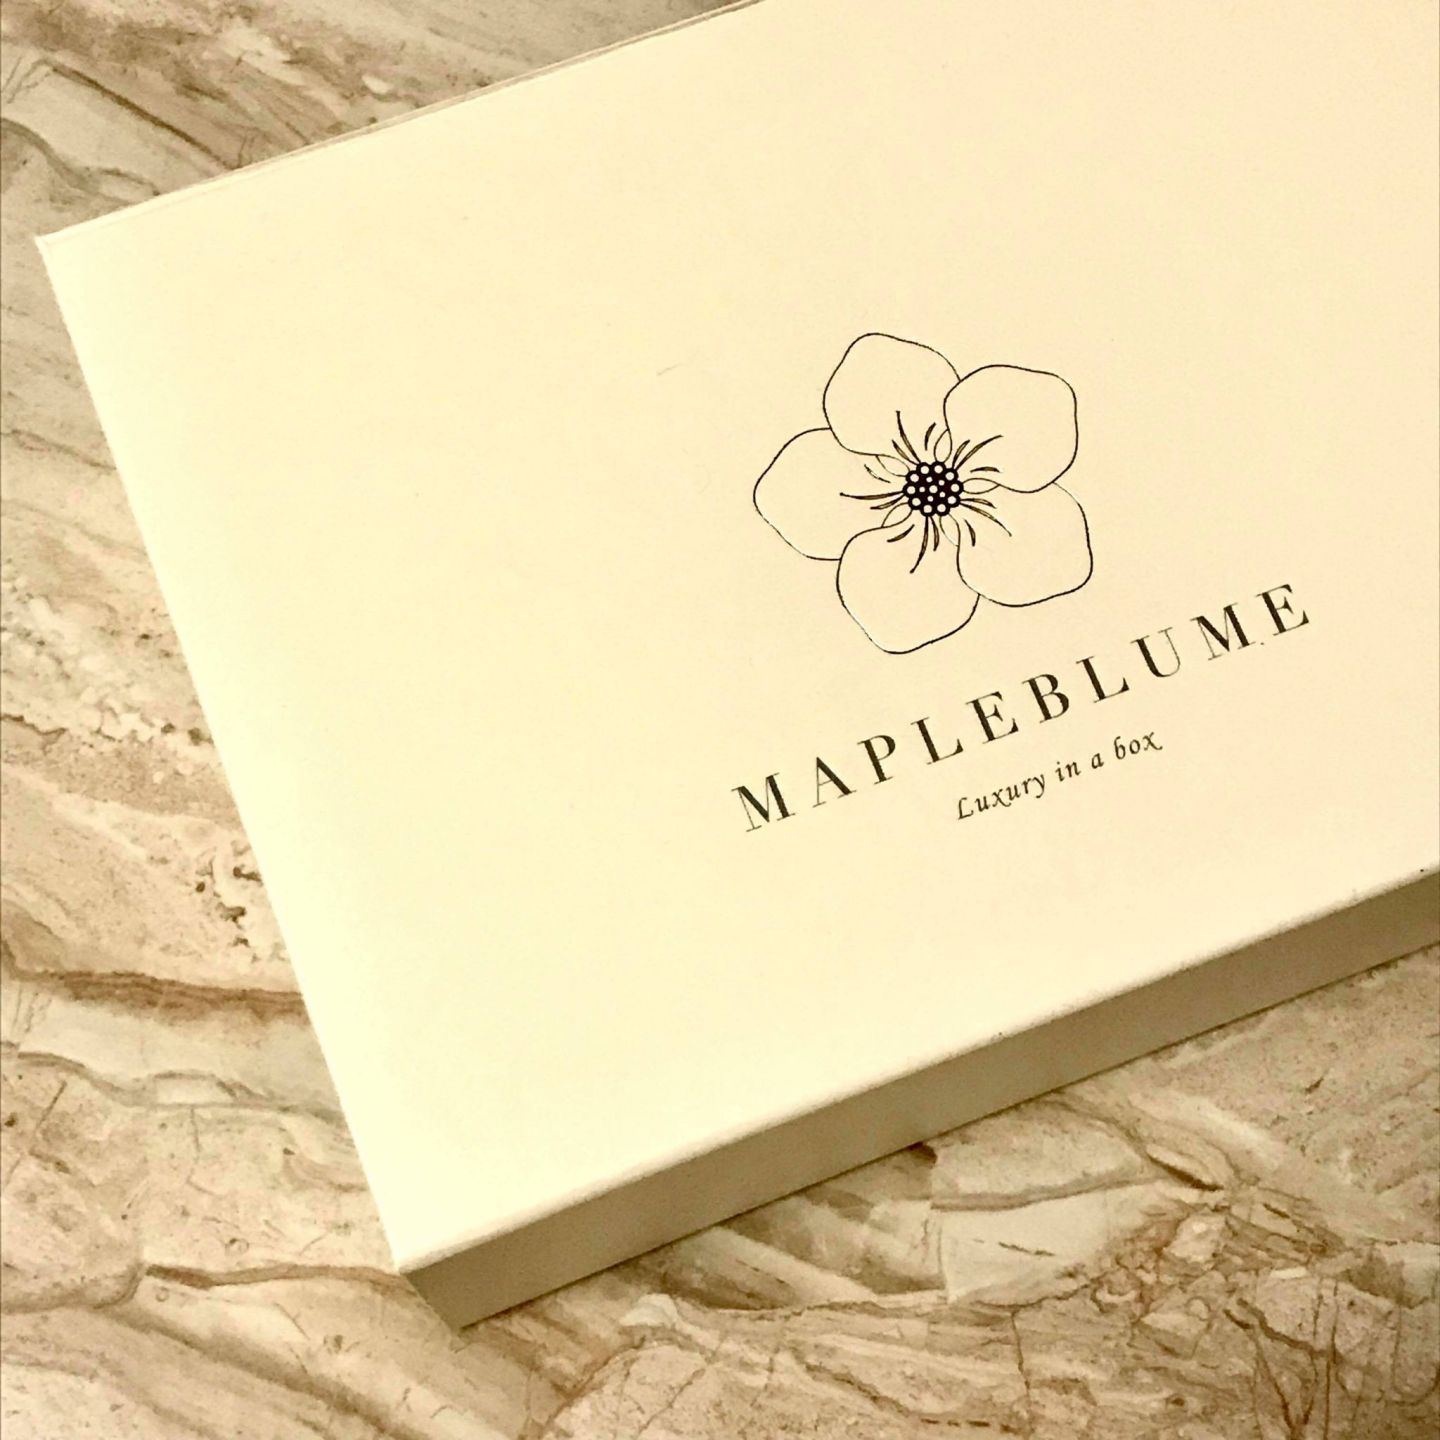 mapleblume subscription box